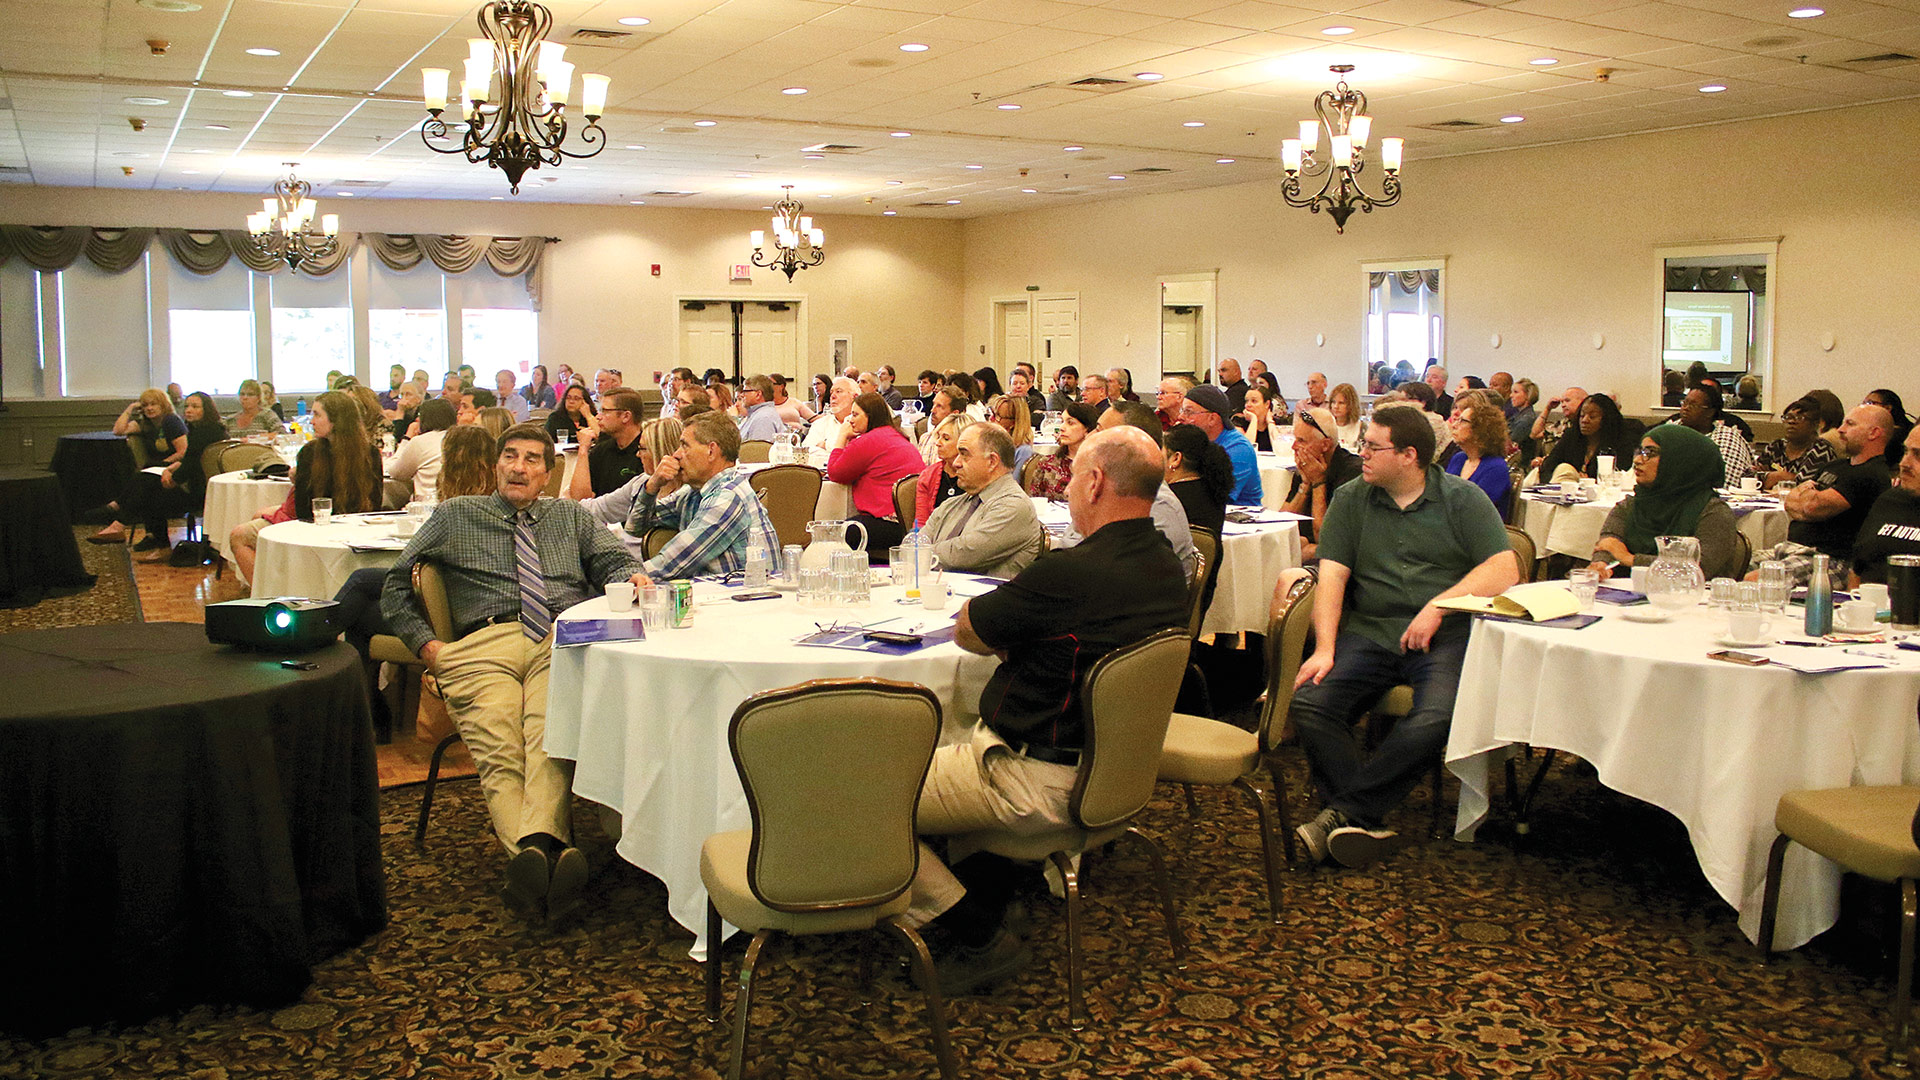 More than 140 area business owners, managers, and employees attended the event.